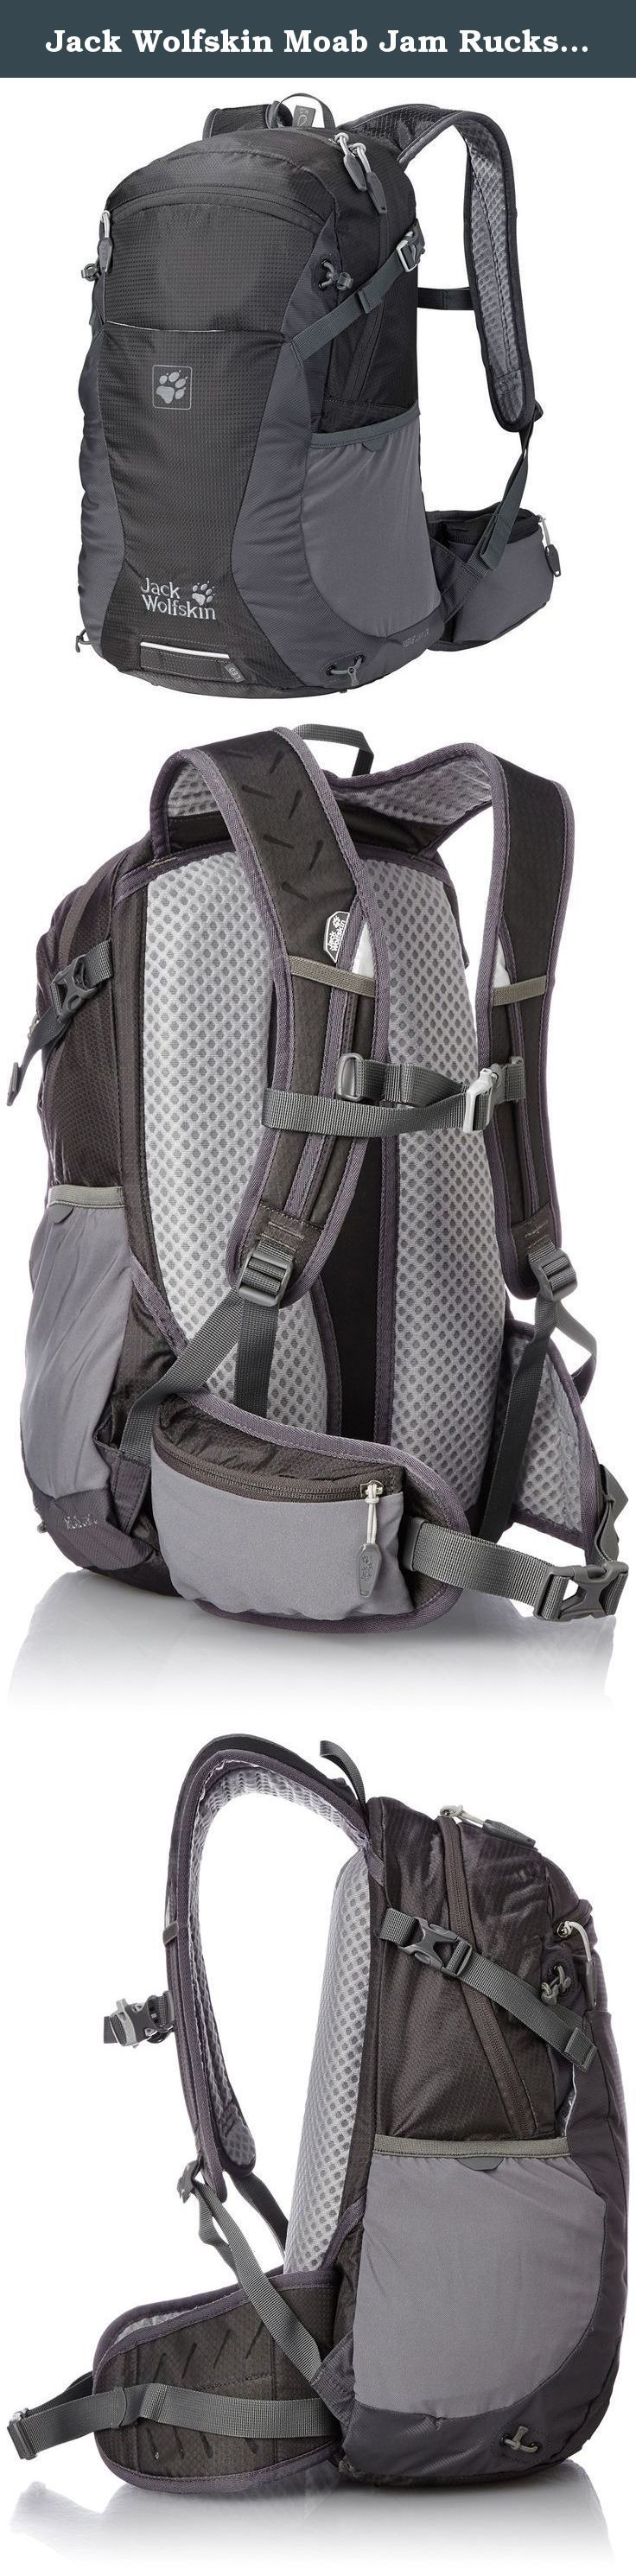 Jack Wolfskin Moab Jam Rucksack, Dark Steel, 24 L. Combines freedom of movement with versatile detailing: the moab Jam 24 is a medium-capacity, lightweight day pack for biking and hiking trips. The acs tight suspension system hugs your body and ensures full control of the load at all times. To ensure you enjoy those physically demanding activities, the central air channel at the back and the air-permeable padding provide exceptional ventilation and outstanding carry comfort.We've added…